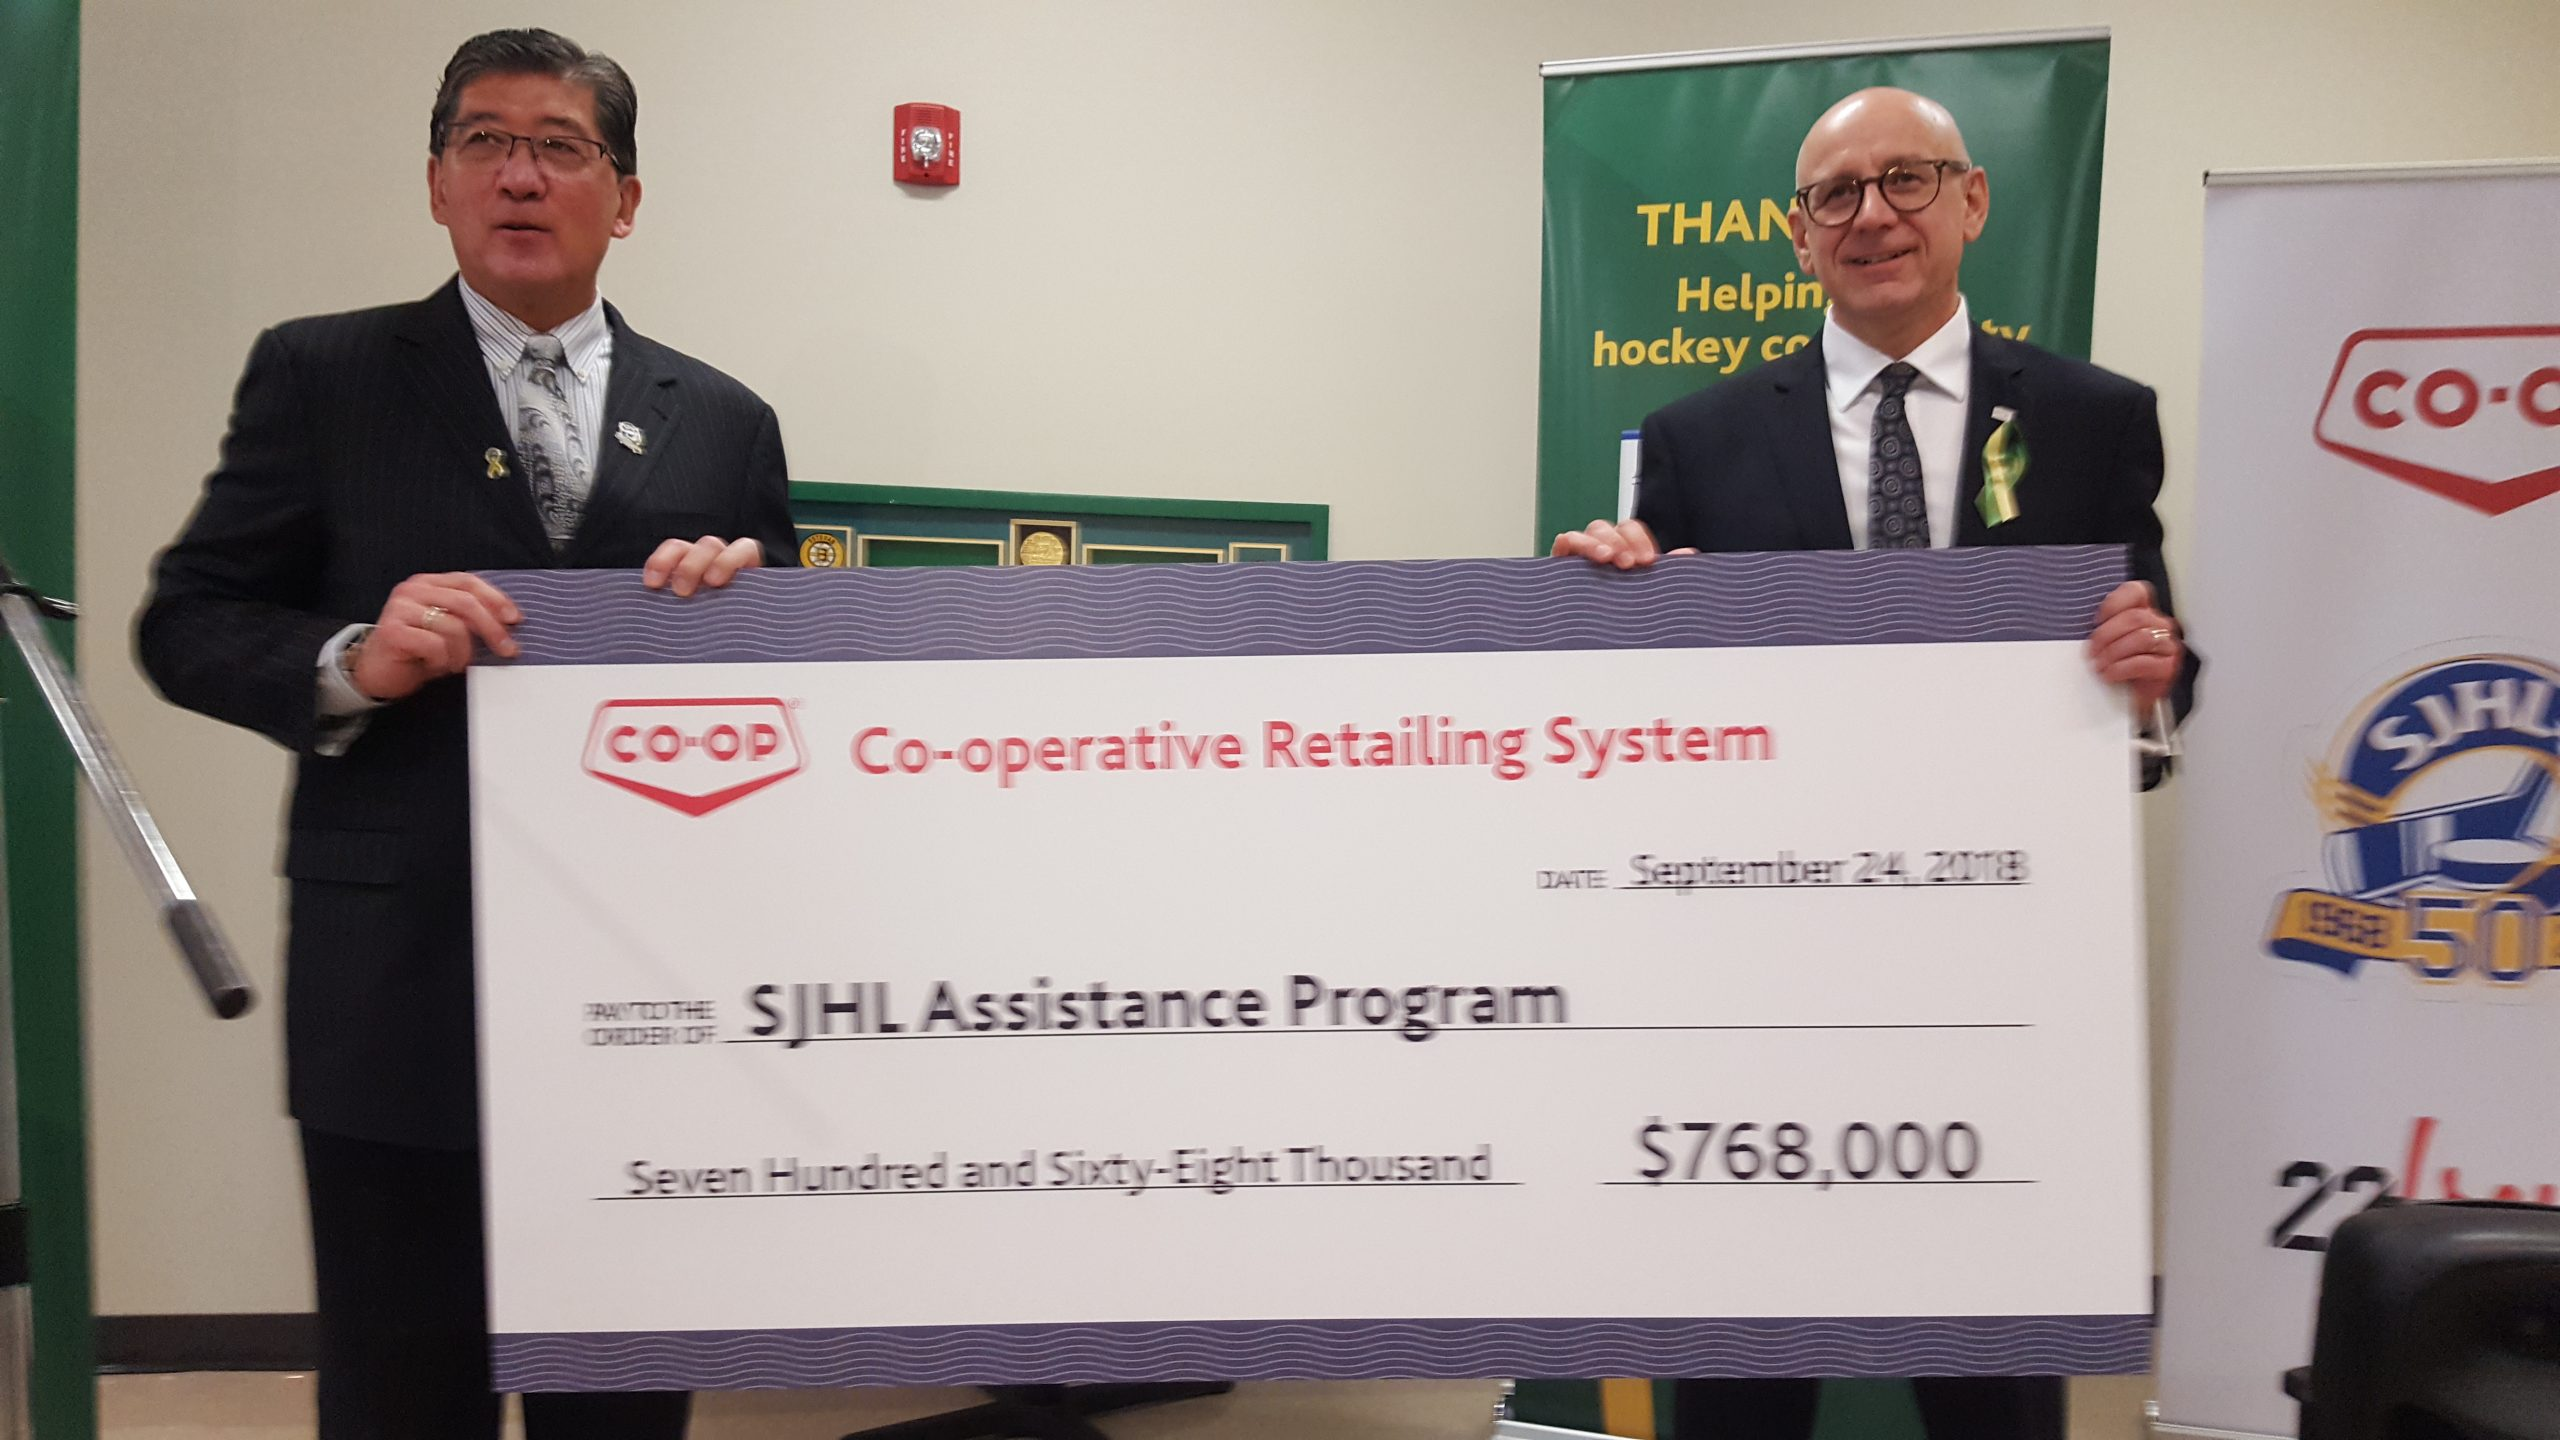 S-J-H-L Assistance Program Gets Large Contribution From Co-op